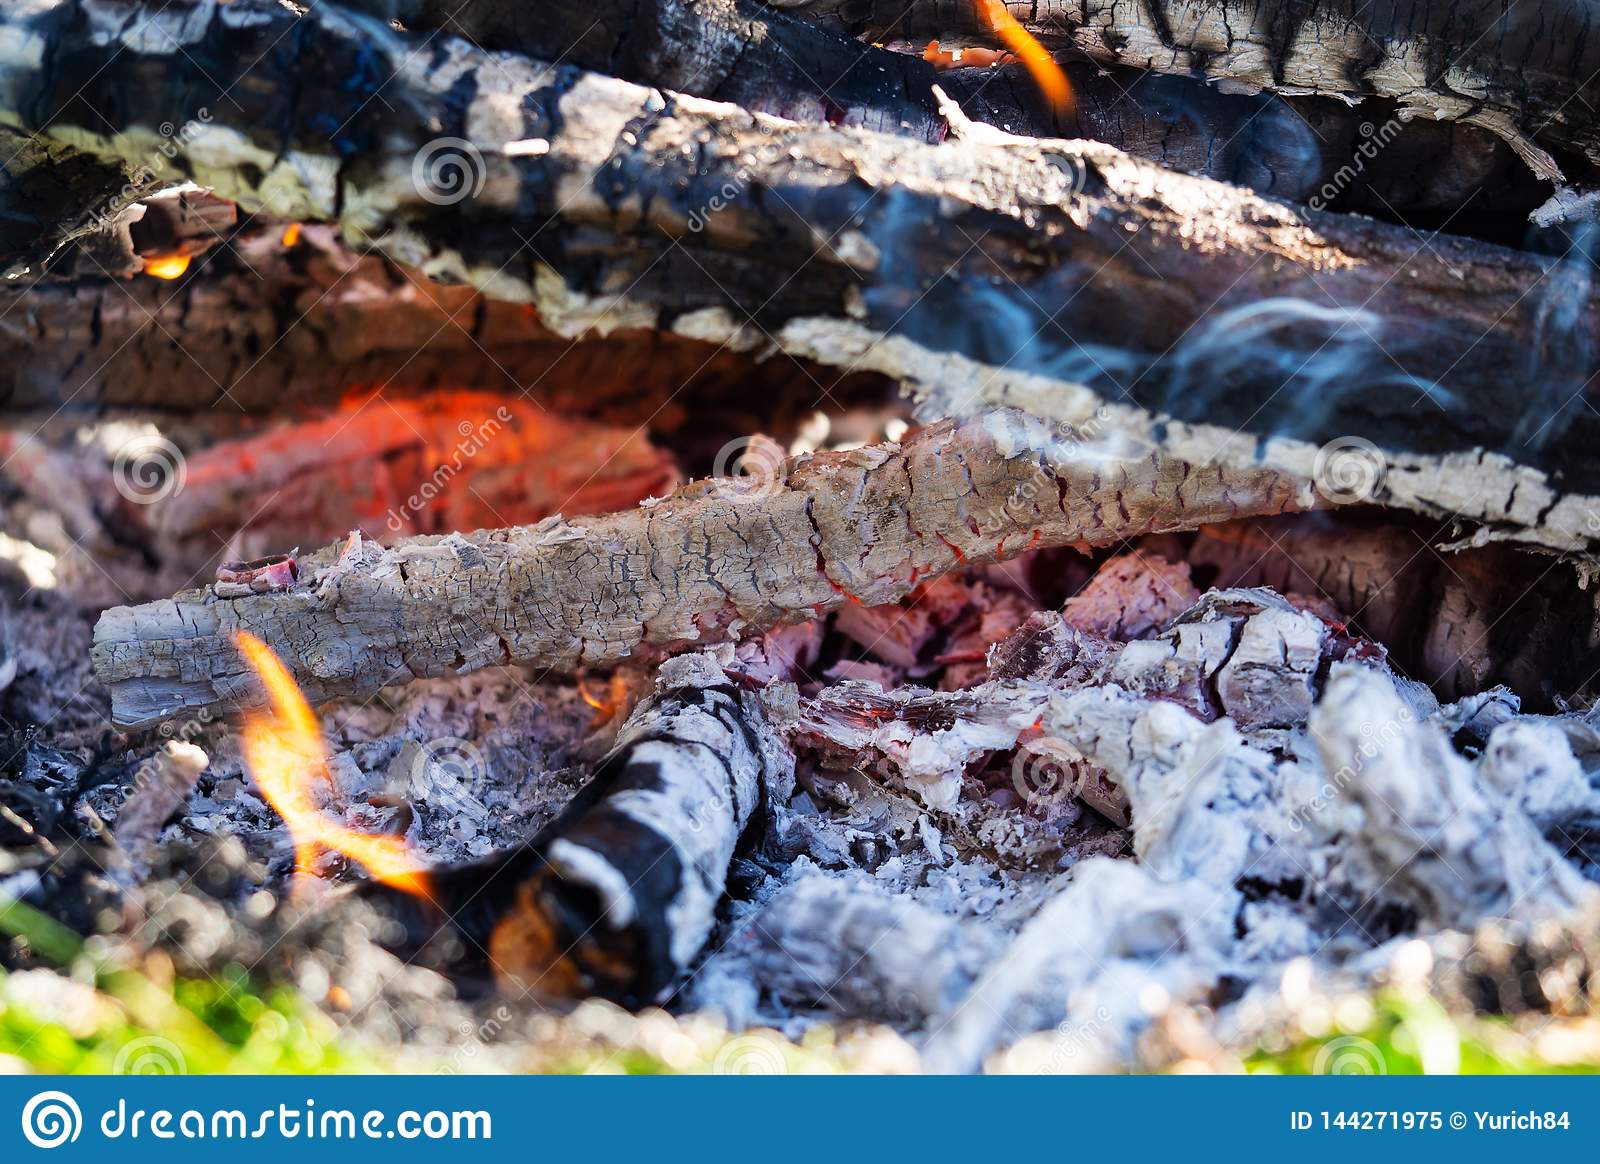 Background of fireplace with gloving embers. Close up view on smouldering fire. Embers burning with red flame. Texture of ash and